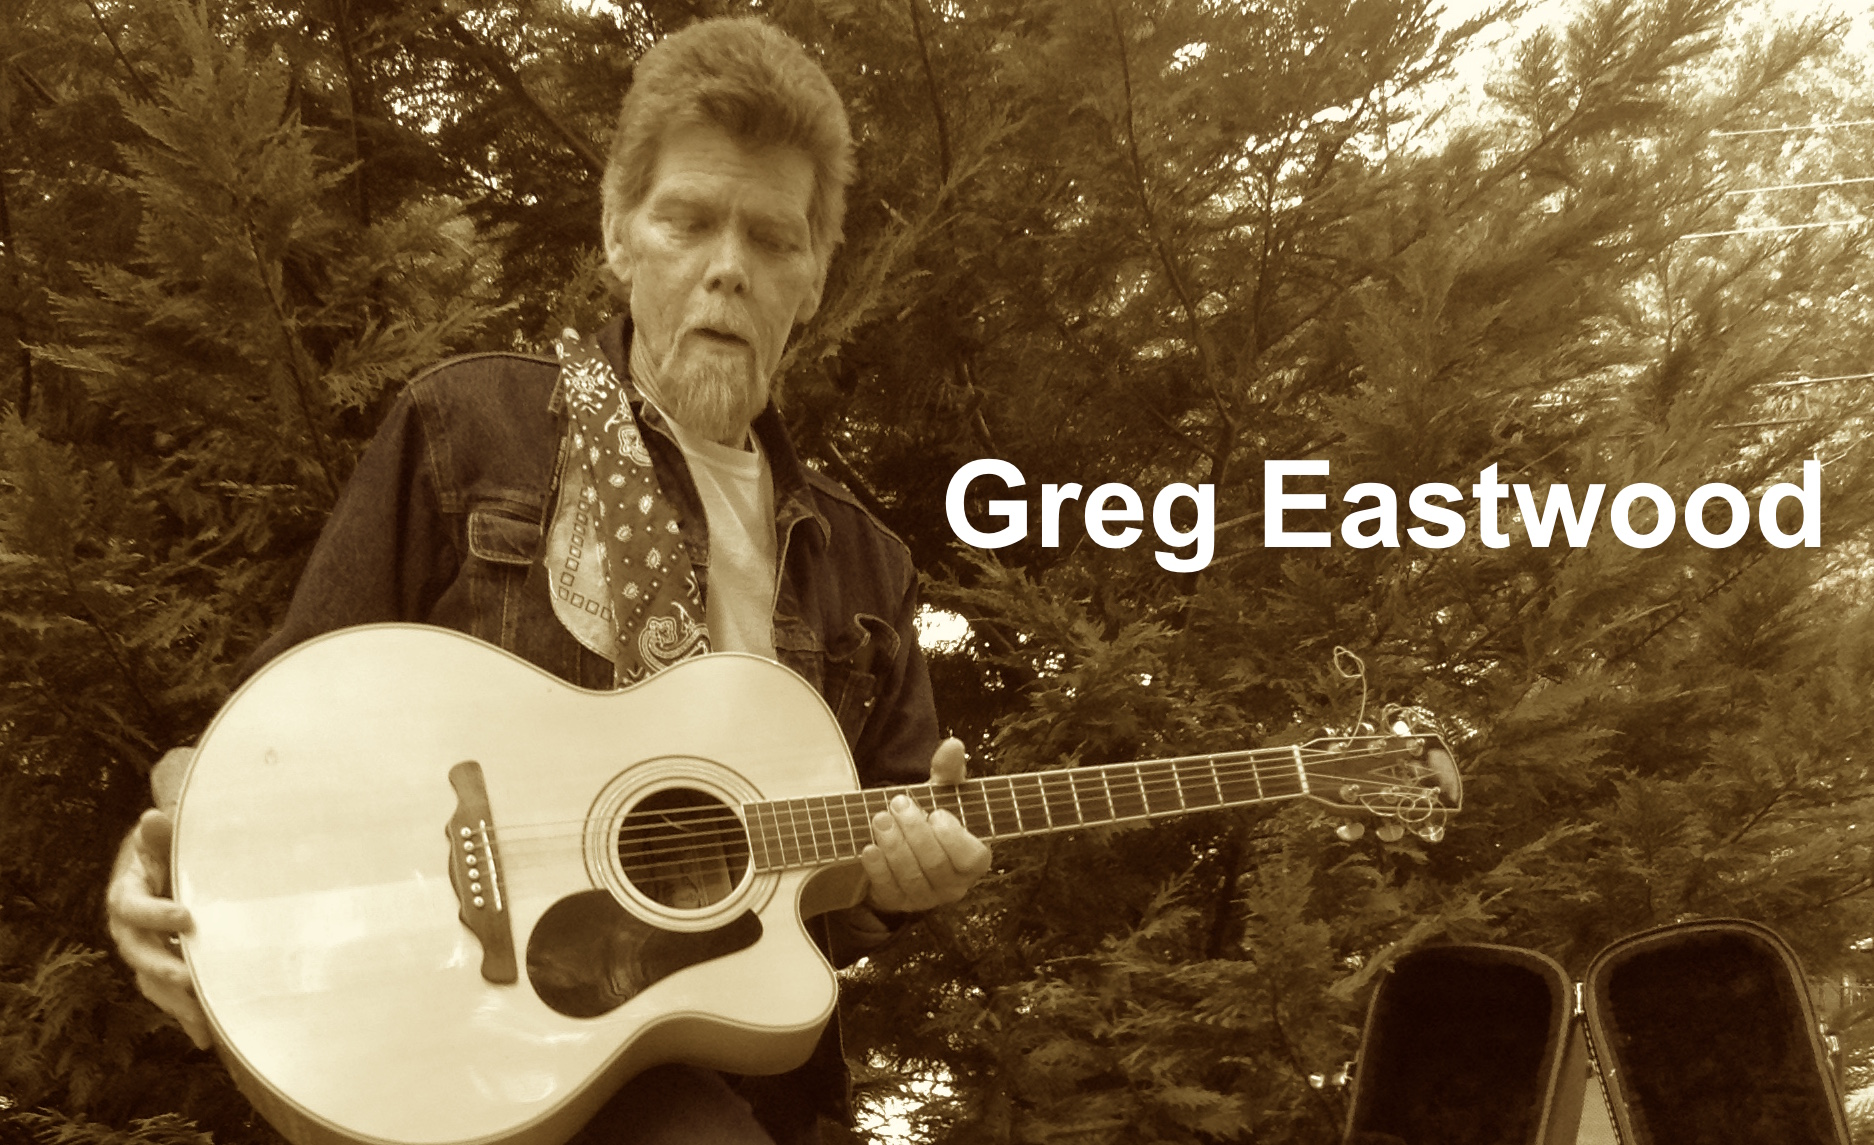 Songwriter Greg Eastwood on Writing Songs That Can Penetrate